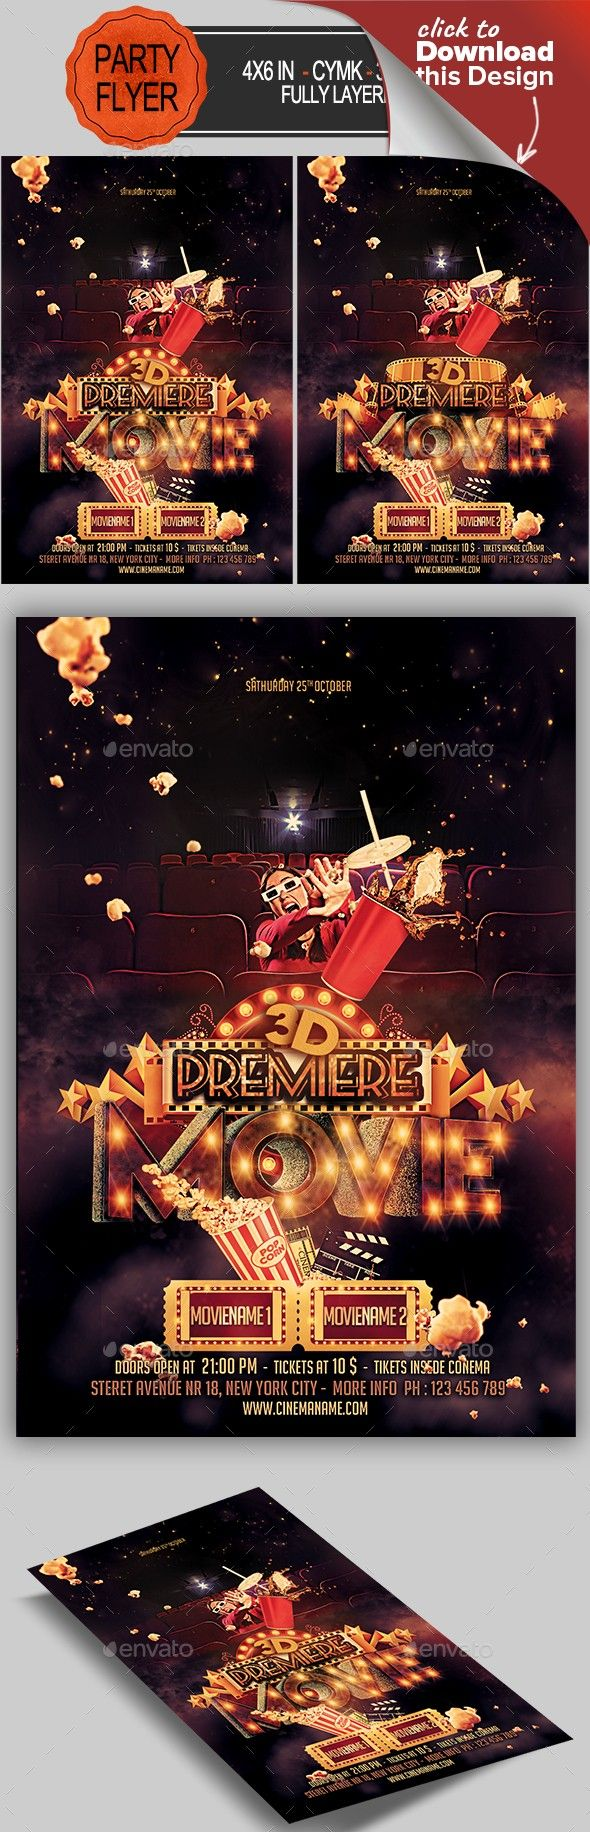 Premiere Movie Flyer | Flyer template, Template and Fonts